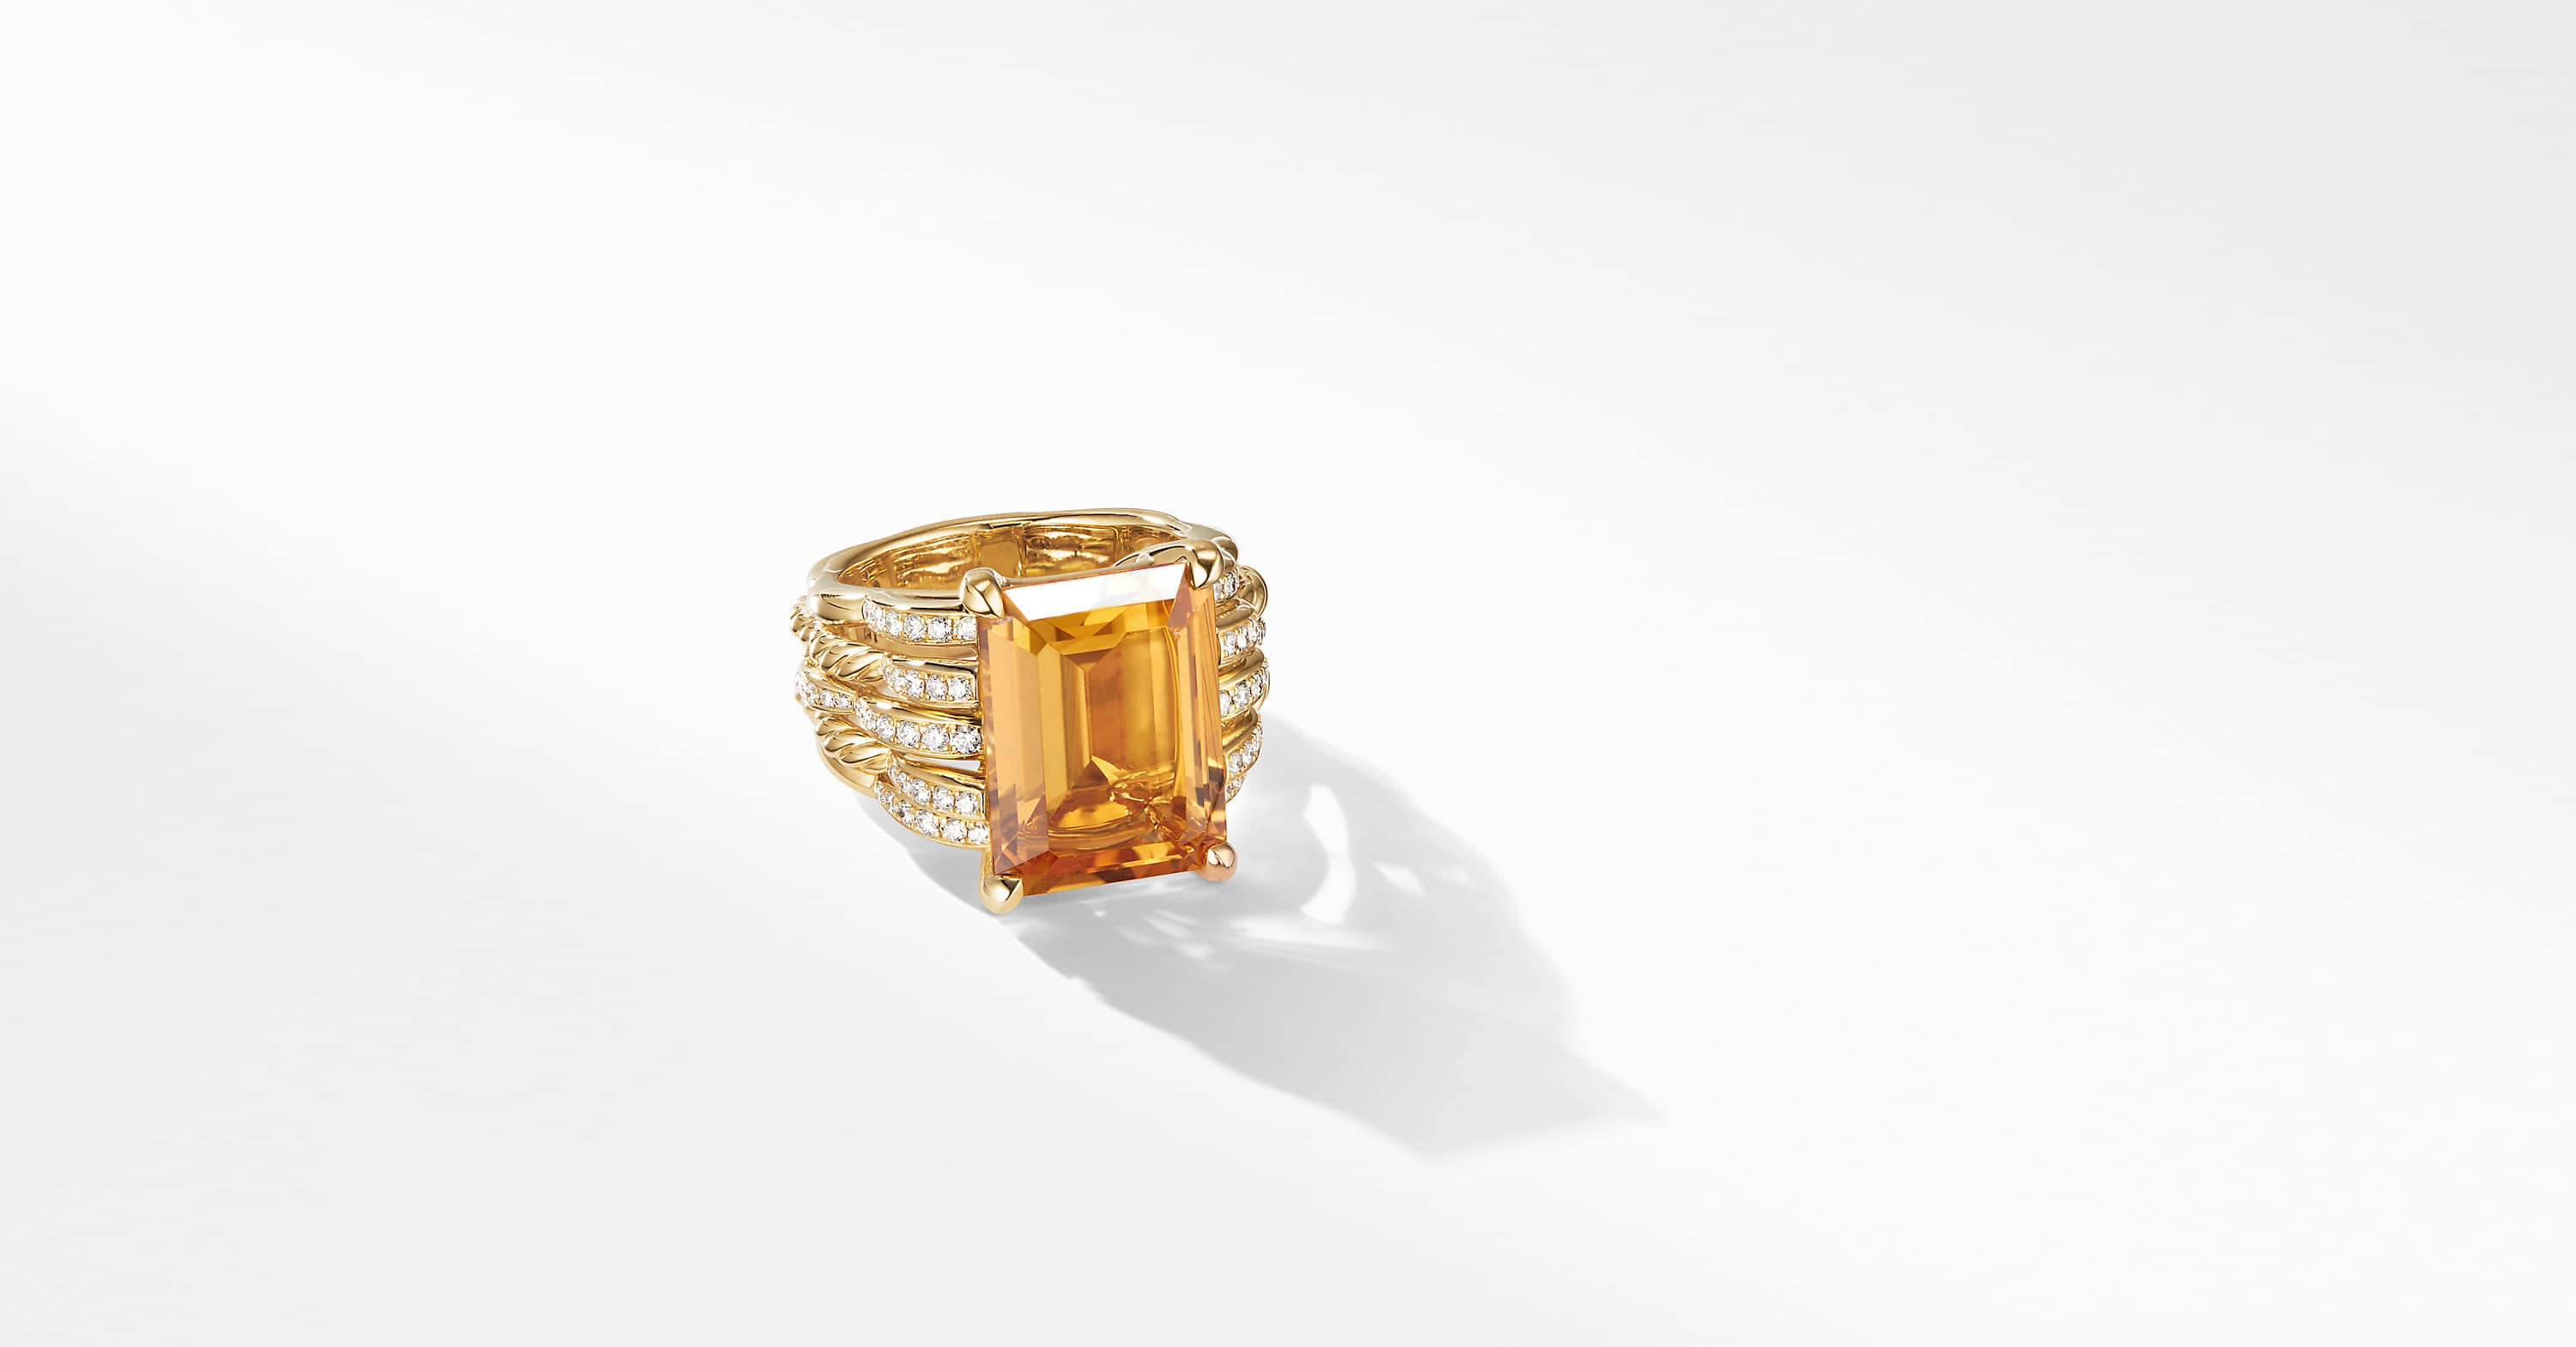 Tides Statement Ring in 18K Yellow Gold with Diamonds